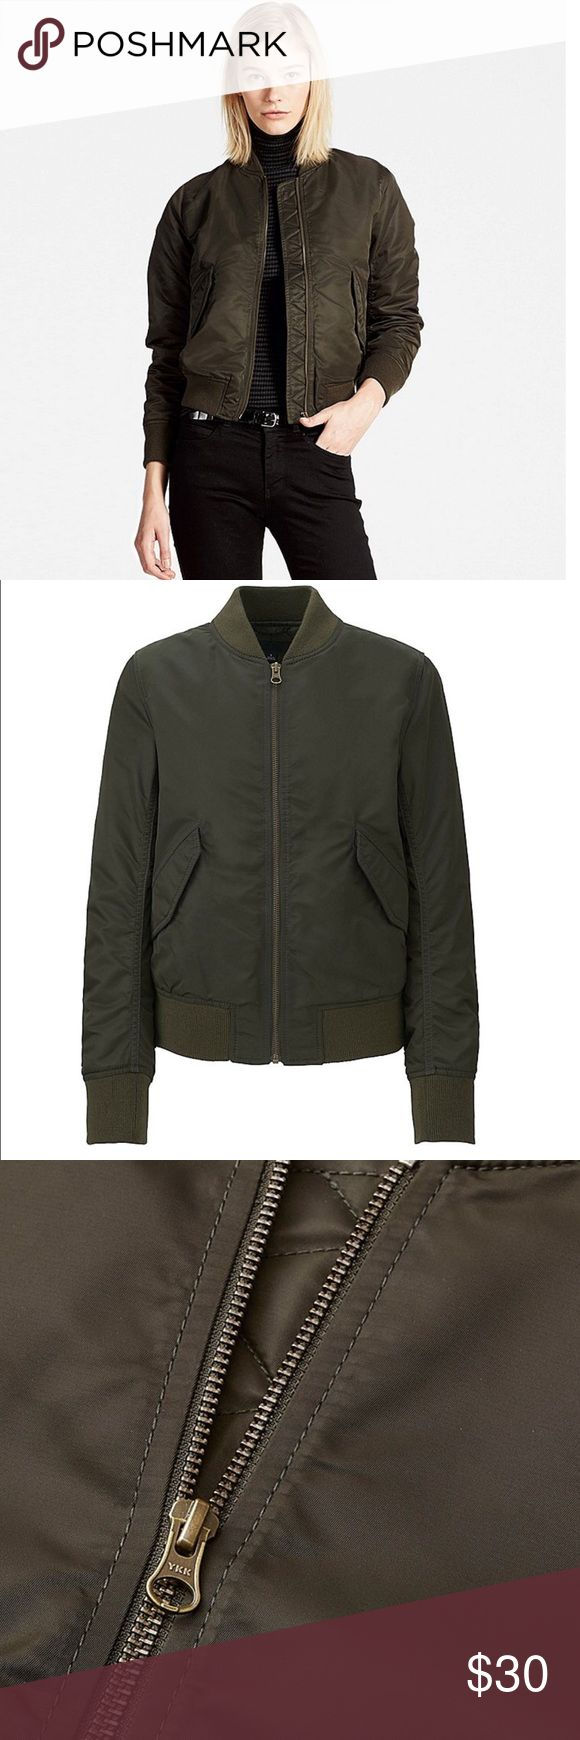 Uniqlo army green bomber jacket😎 In great condition! Purchased it last year it retails for $50 Uniqlo Jackets & Coats